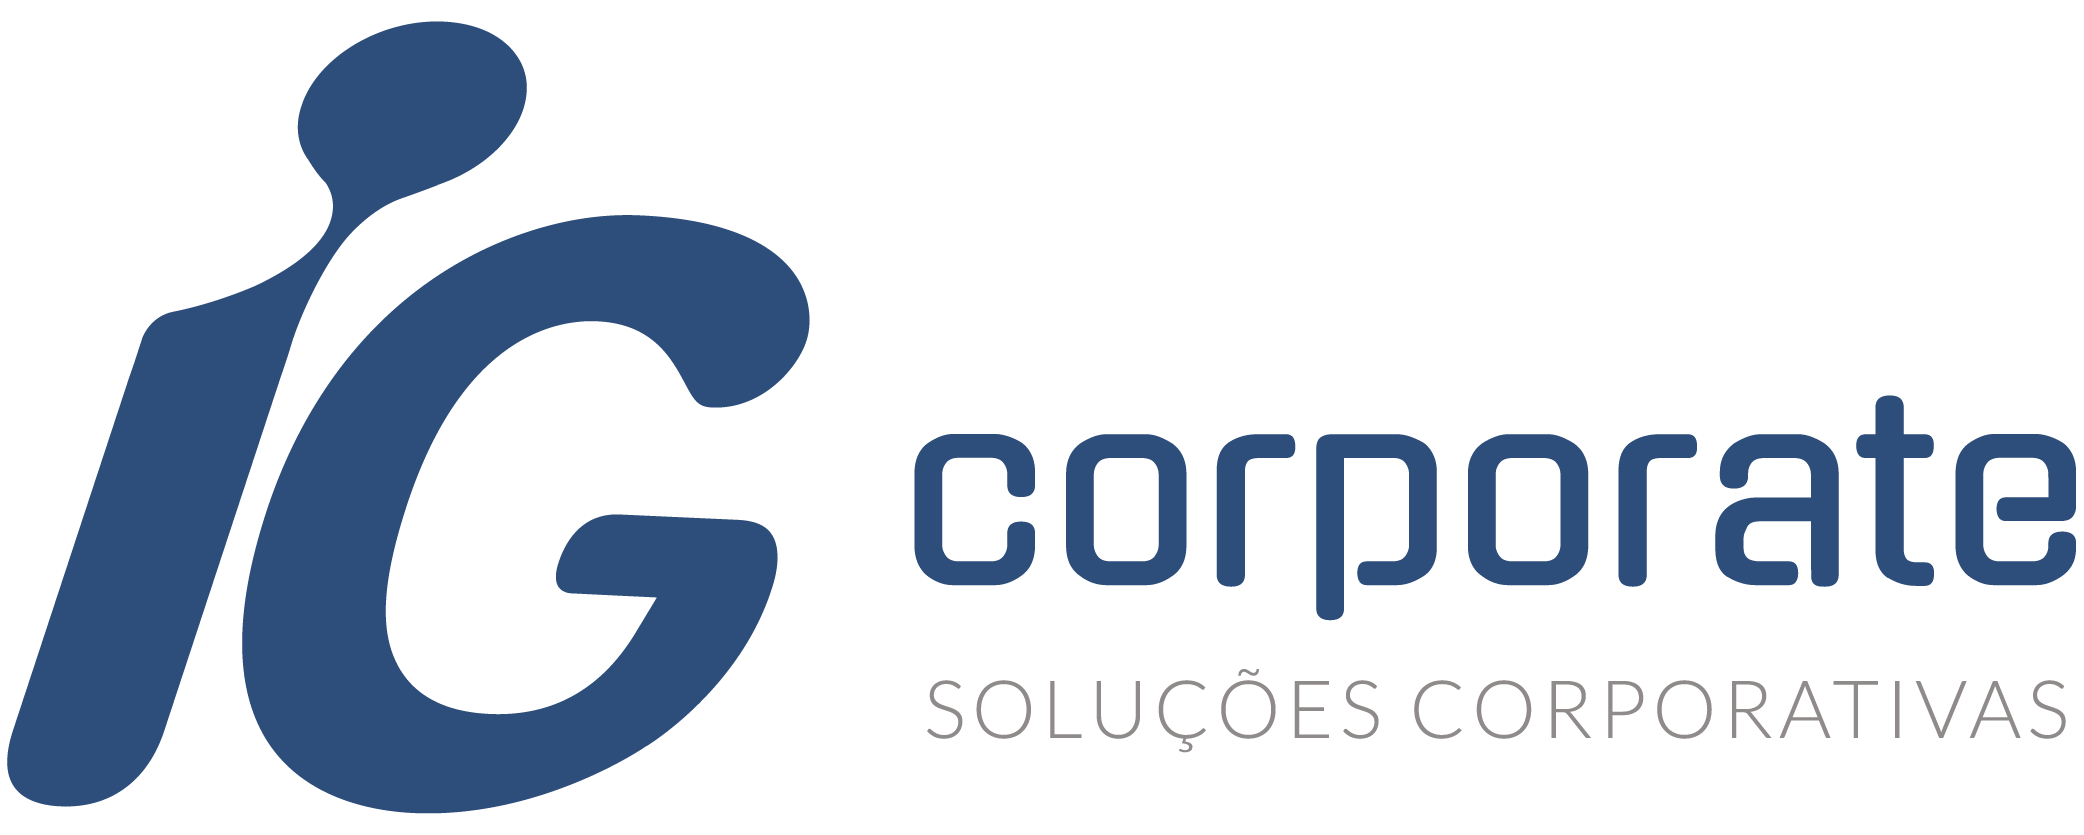 igcorporate